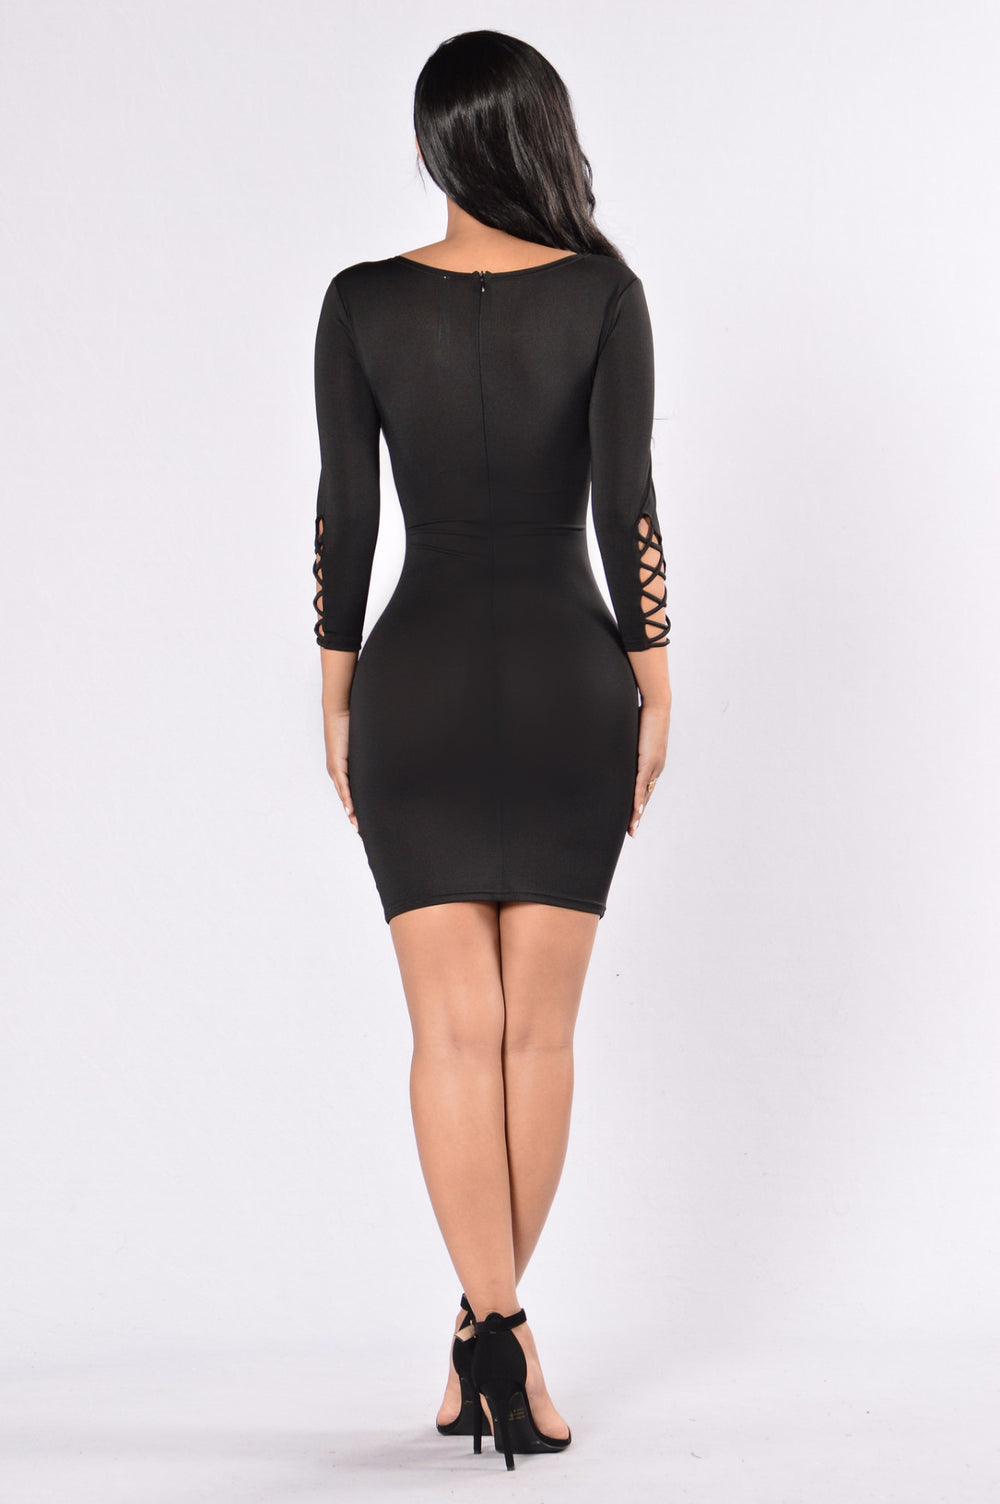 Always Up To Trouble Dress - Black